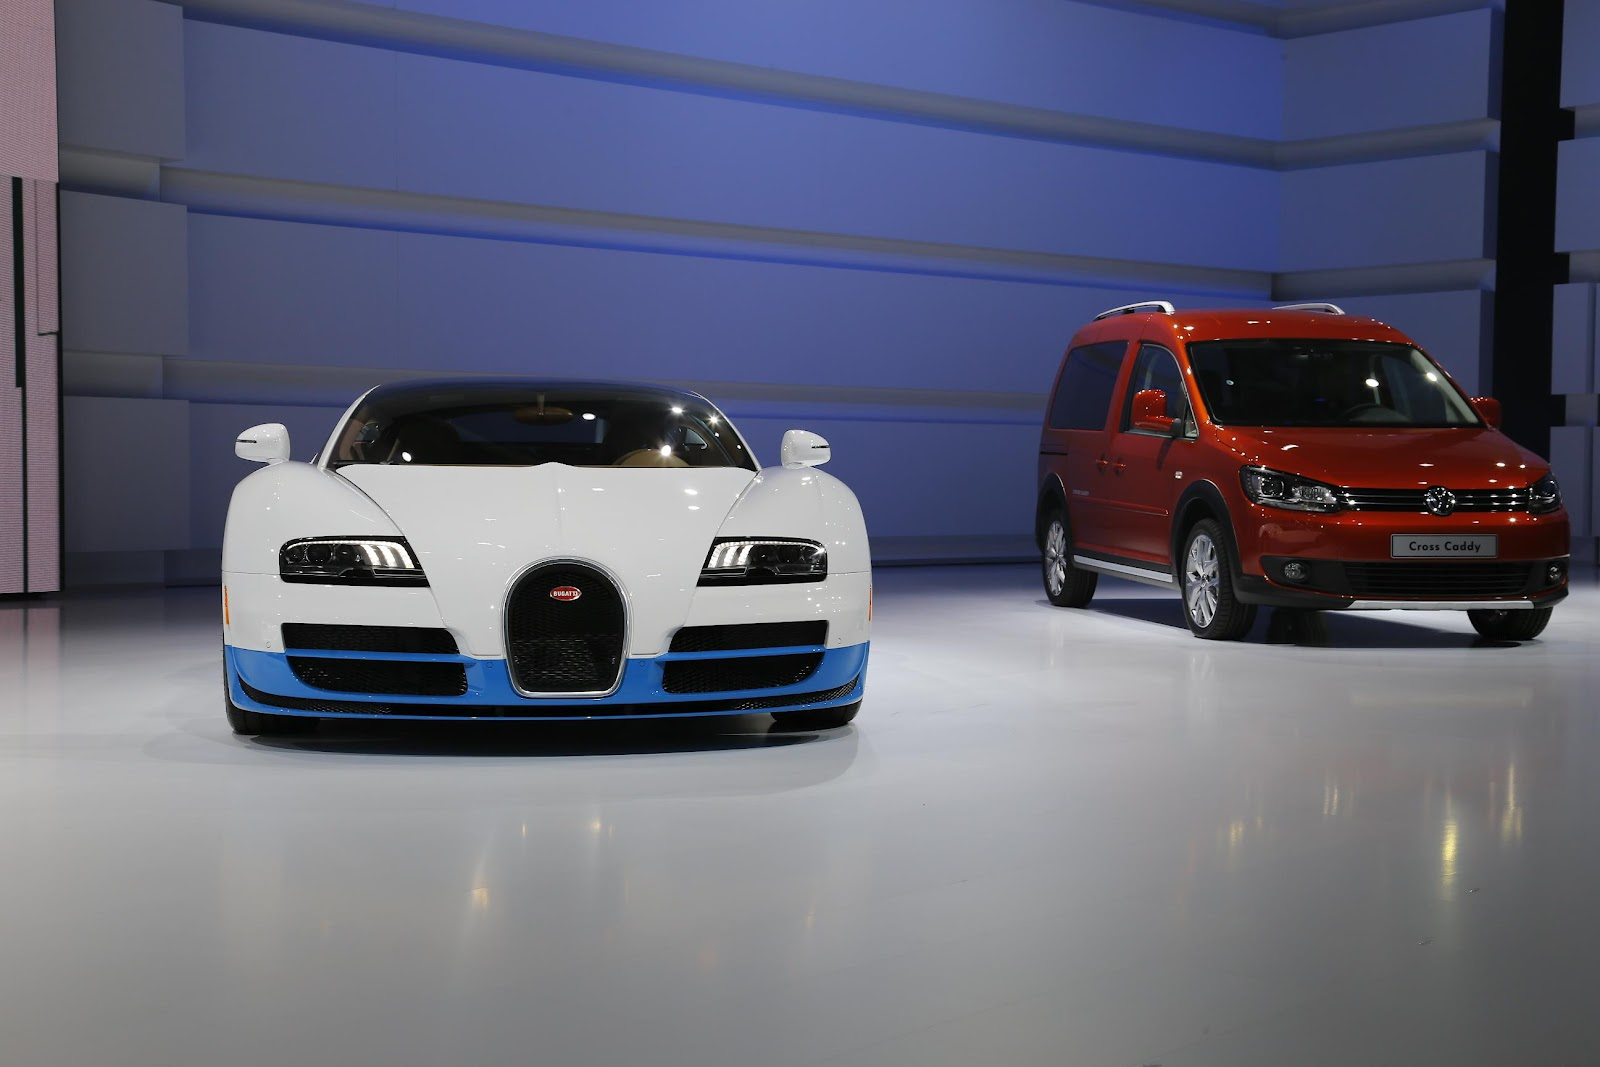 paris motor show bugatti veyron 16 4 grand sport vitesse special edition c. Black Bedroom Furniture Sets. Home Design Ideas